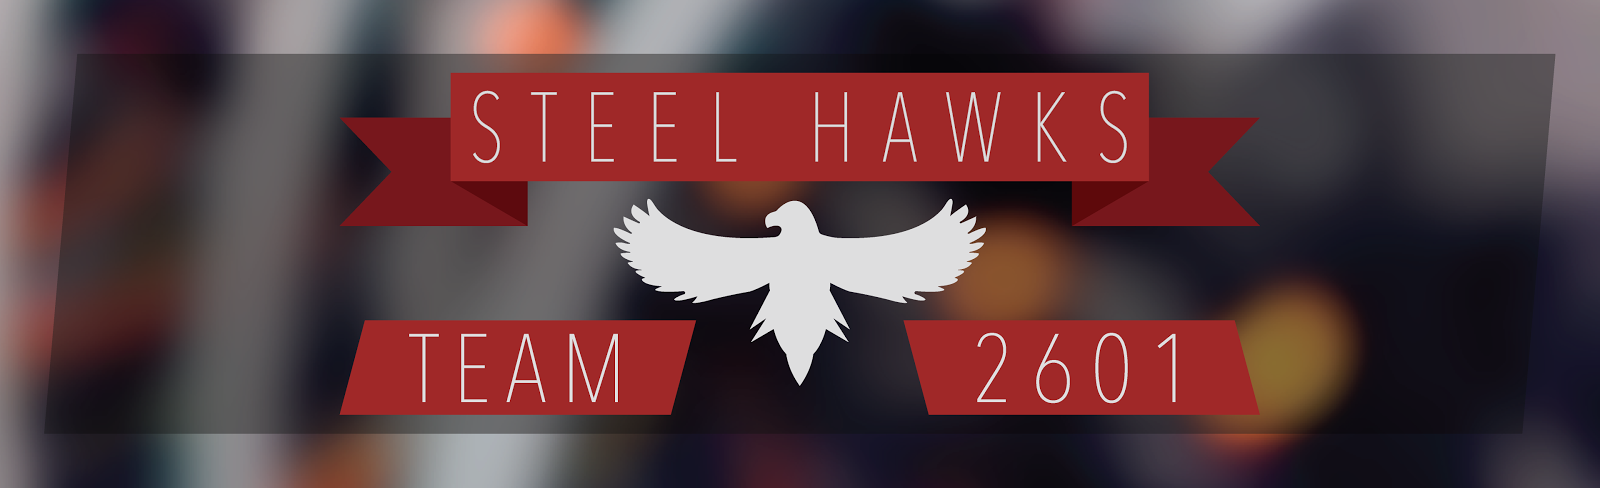 Steel Hawks - Team 2601